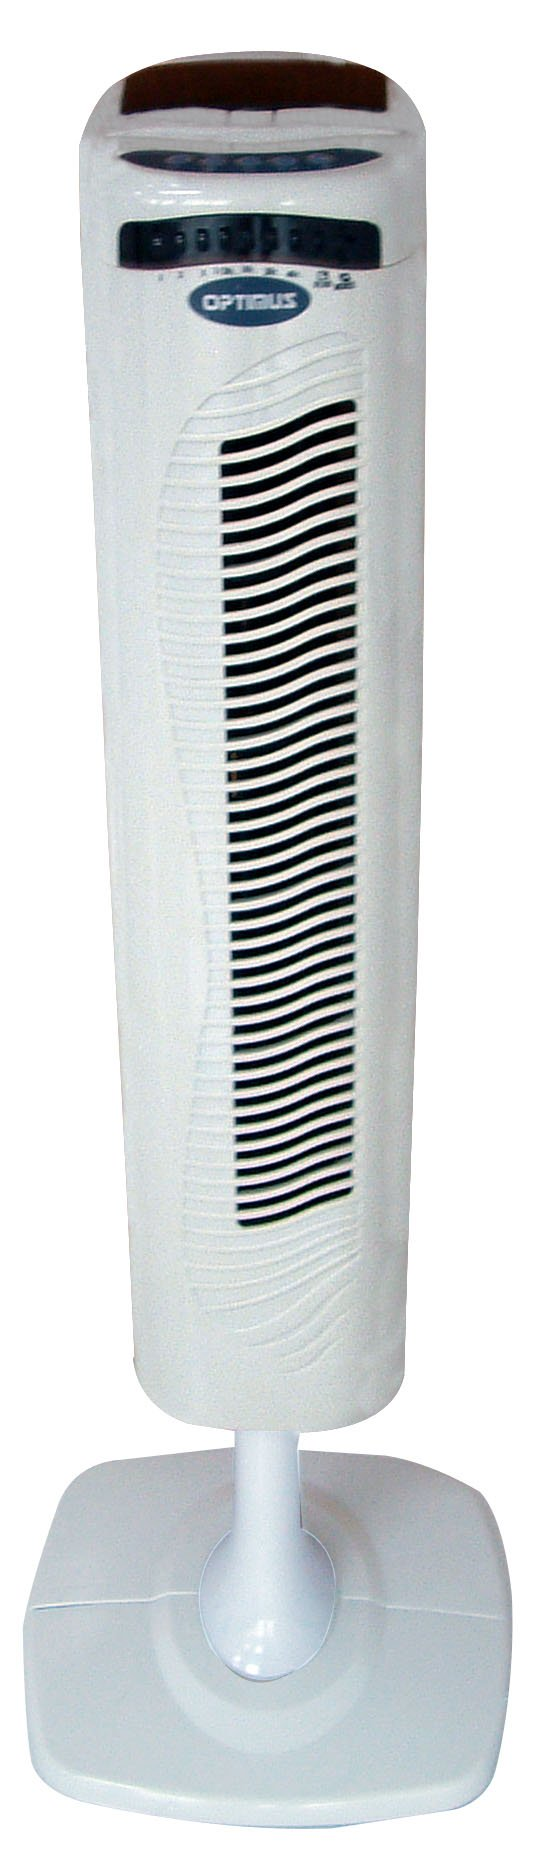 Optimus F-7336 40-Inch Pedestal Tower Fan with Remote Control and LED, White